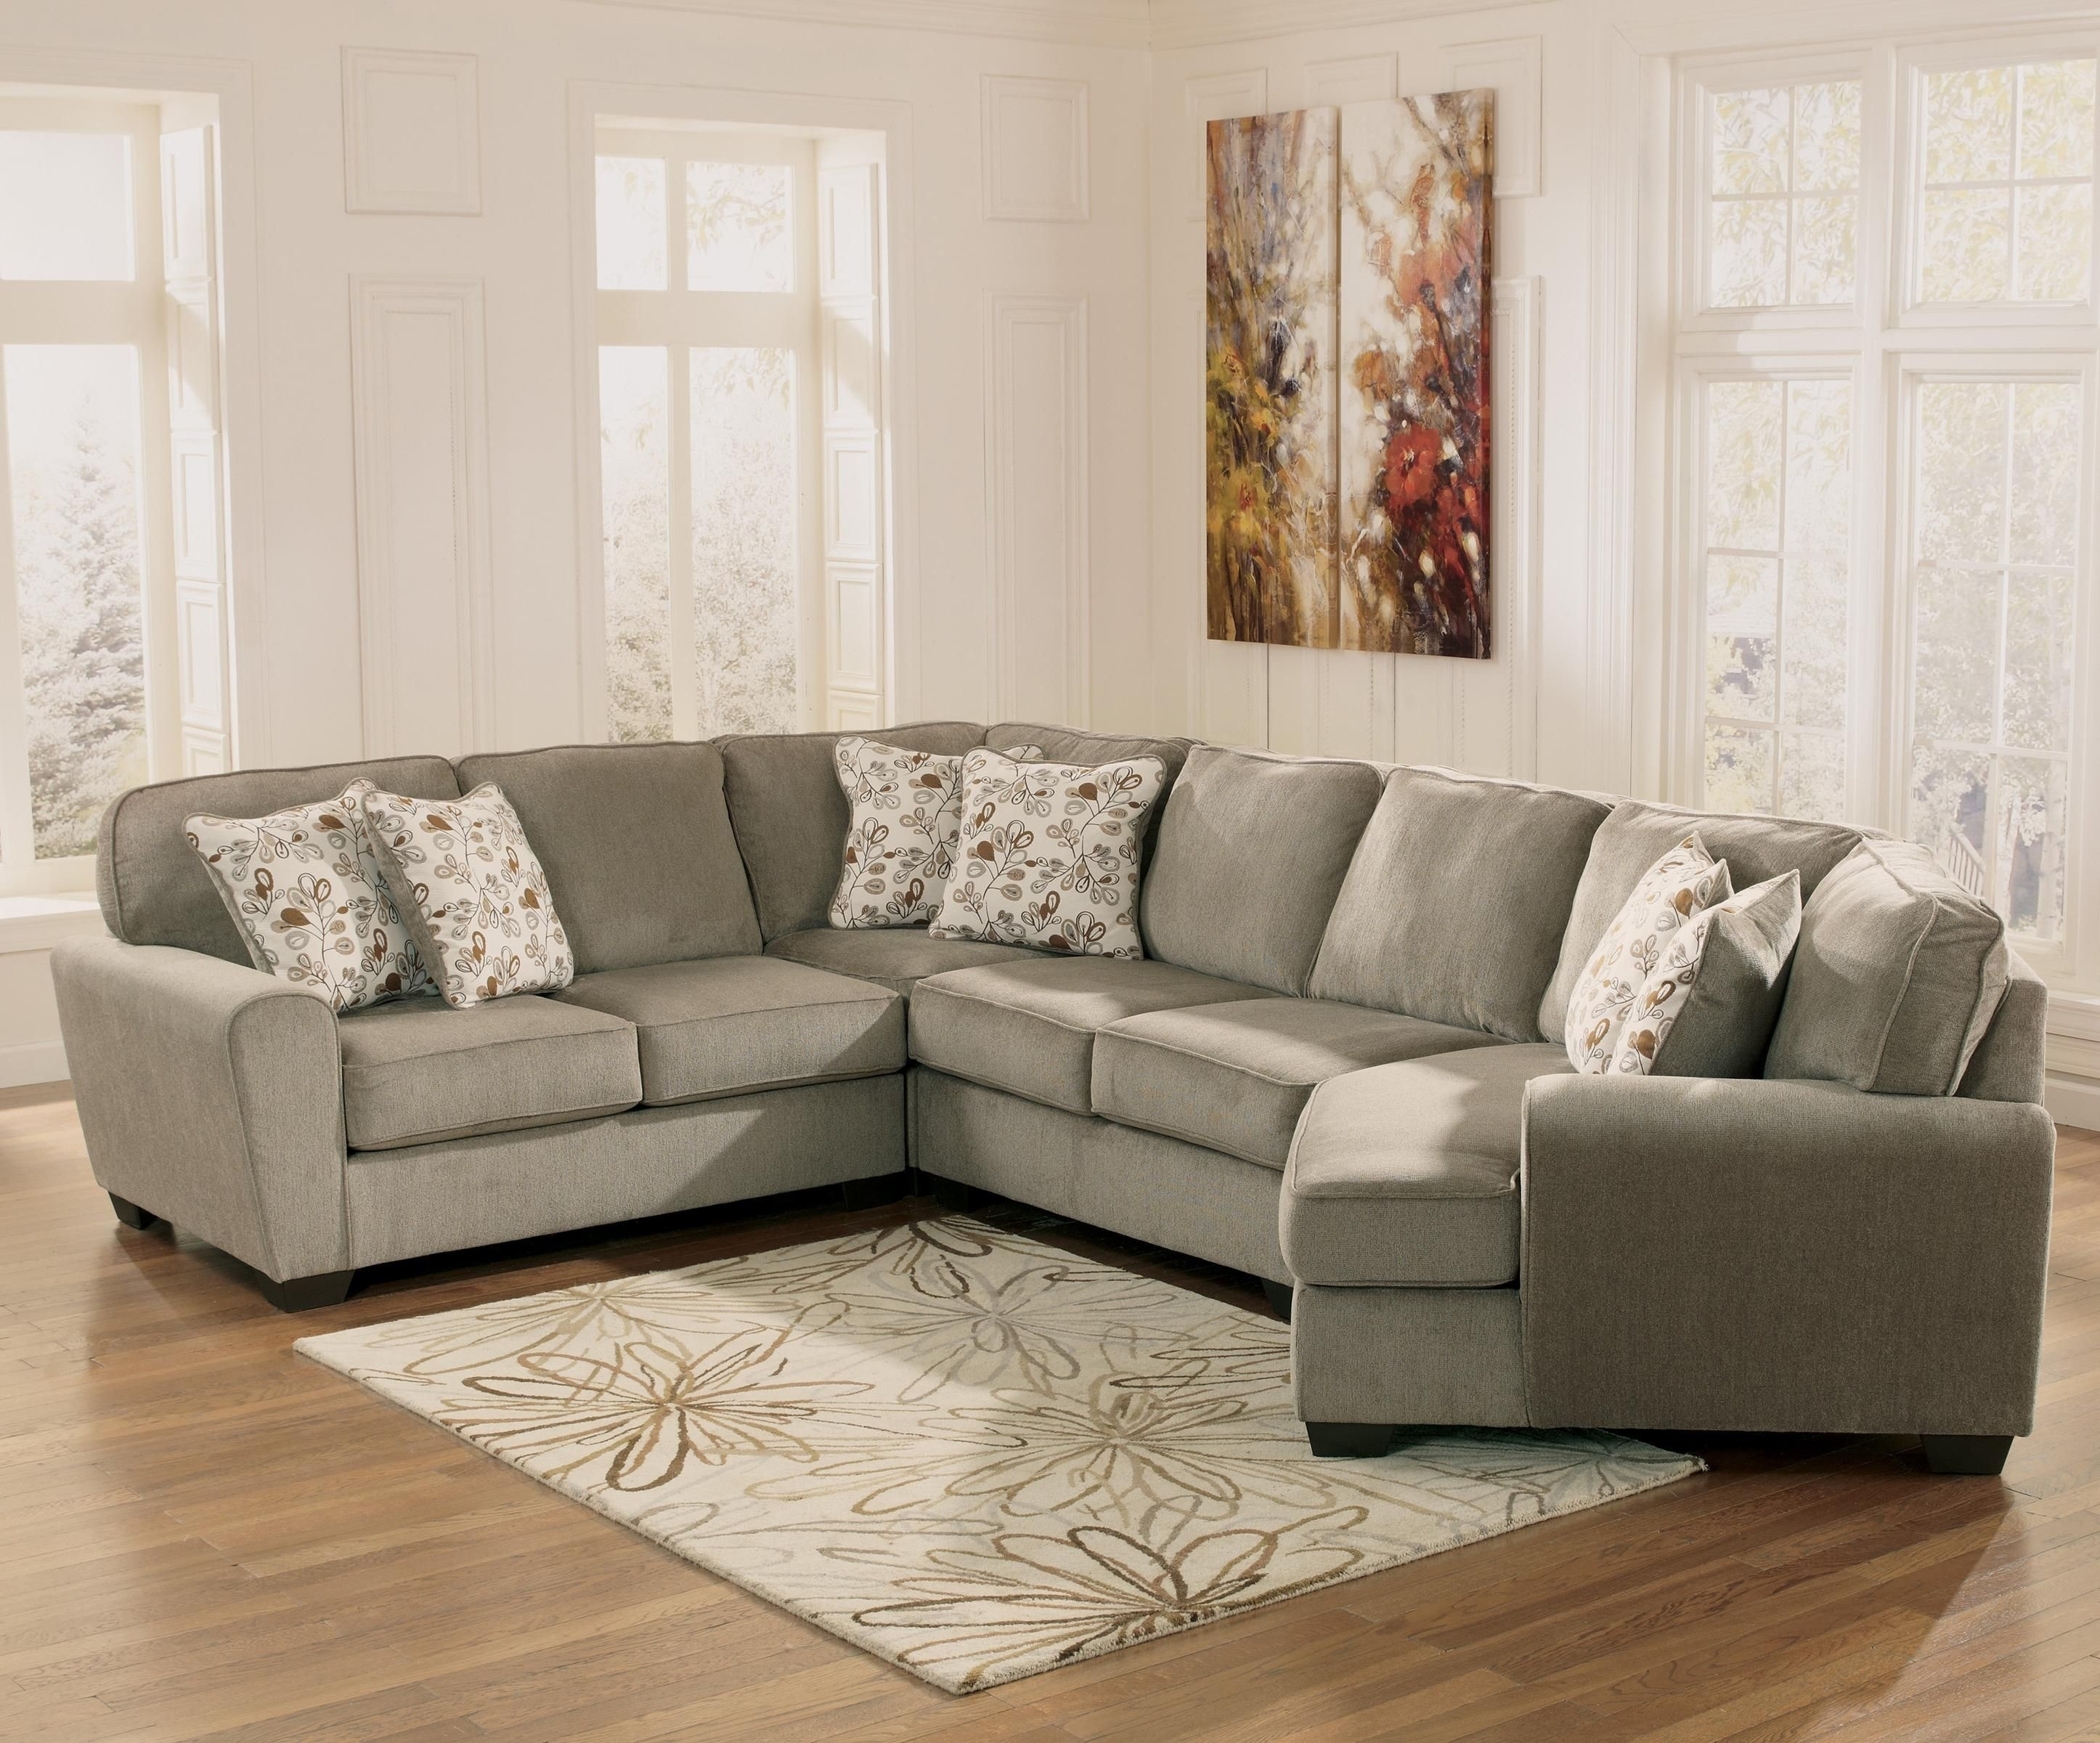 Darcy Couch Ashley Furniture throughout Sectional Sofas At Ashley (Image 9 of 15)